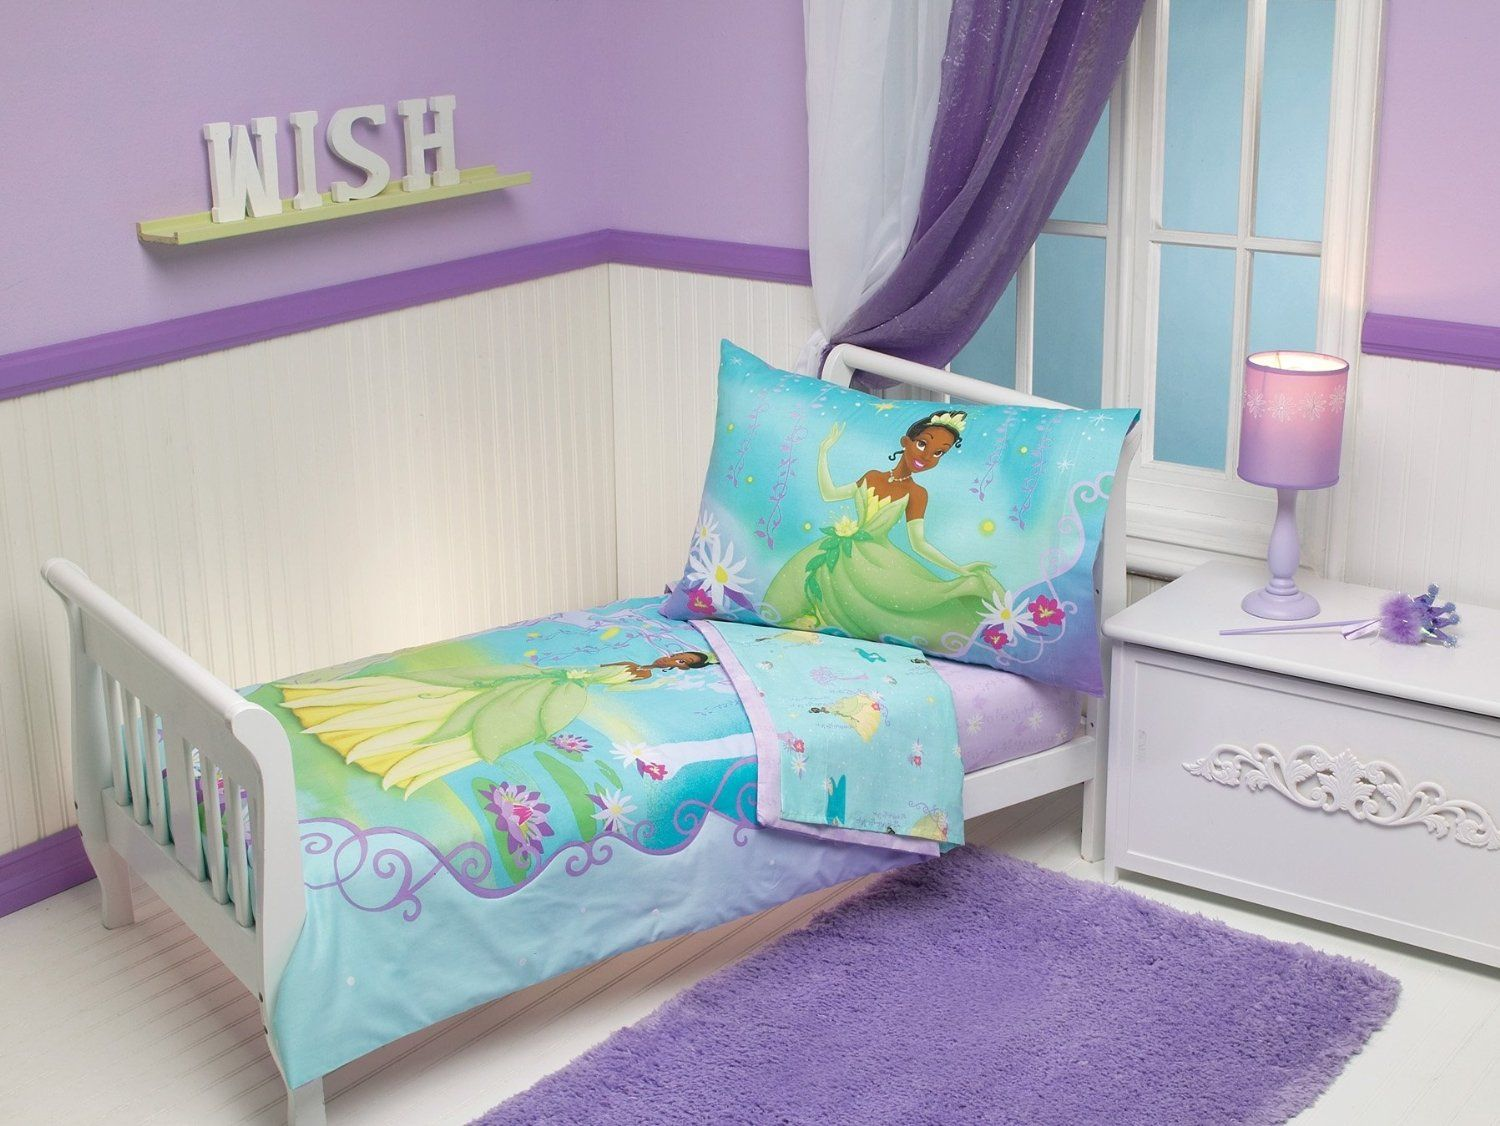 Gorgeous bedroom for little girl ideas pictures cute little girl bedroom ideas fancy puple and - Little girl purple bedroom ideas ...